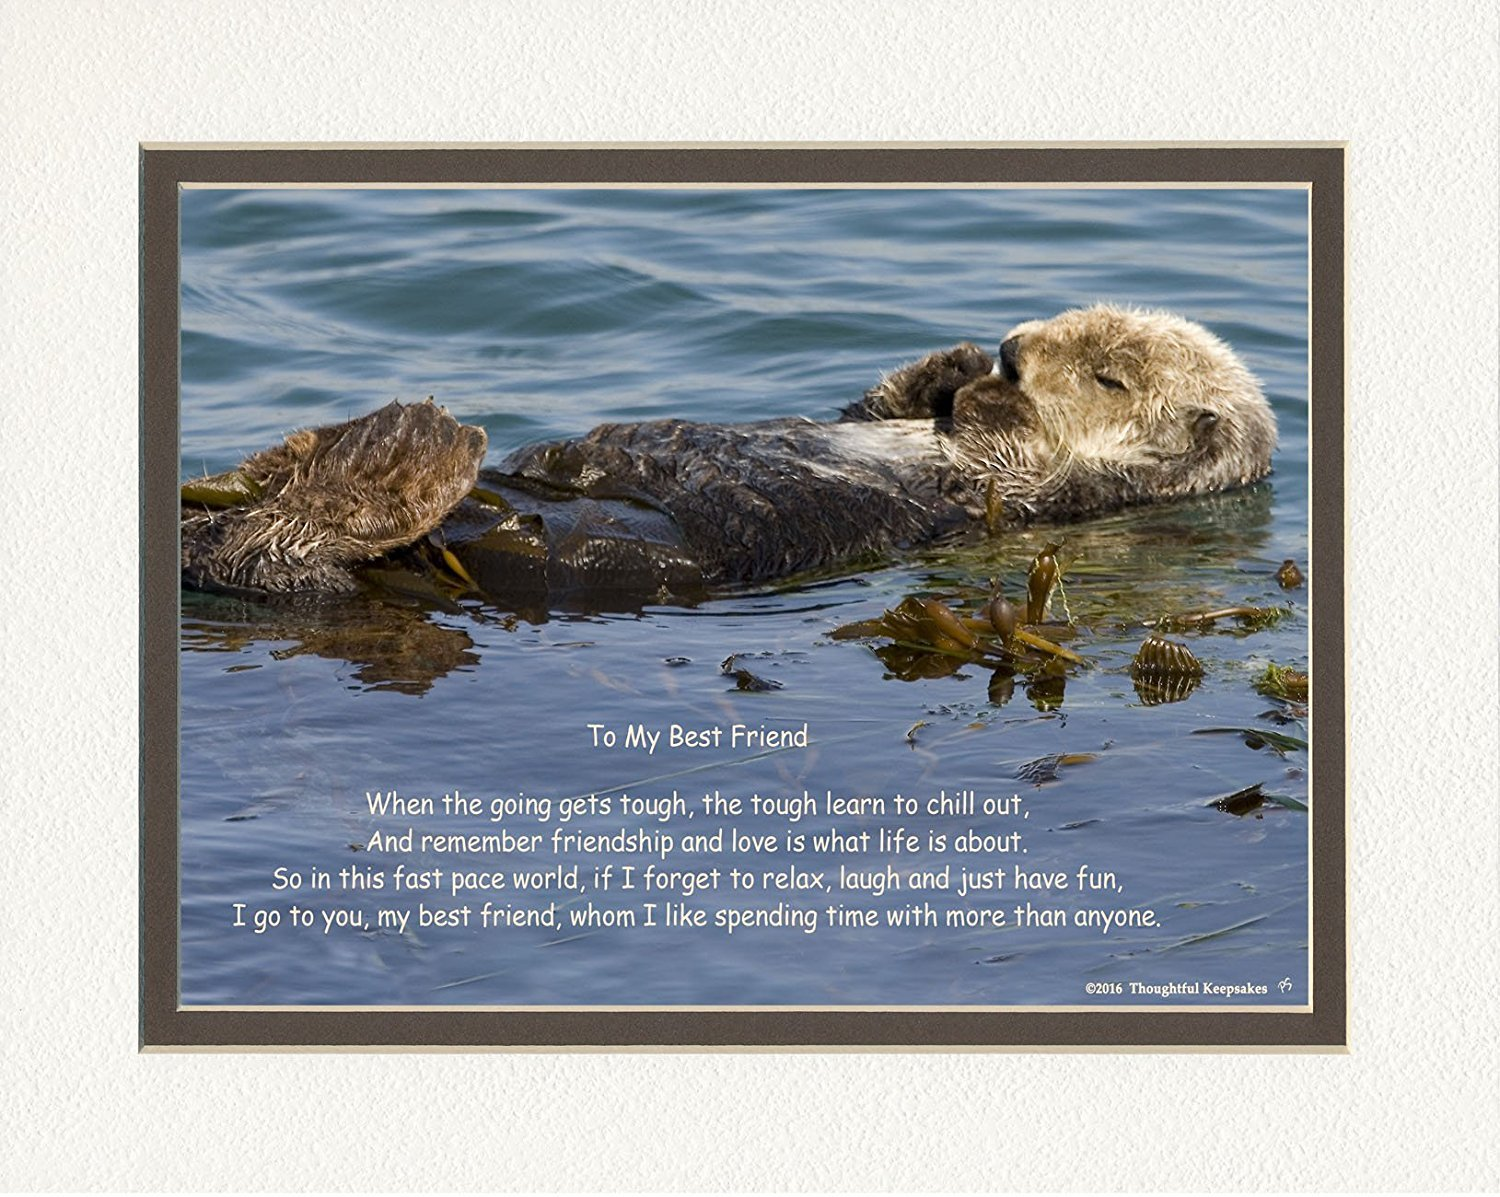 Friend Gifts Best Sea Otter Photo With I Like Spending Time My Poem 8x10 Double Matted Special Unique Gift For Christmas